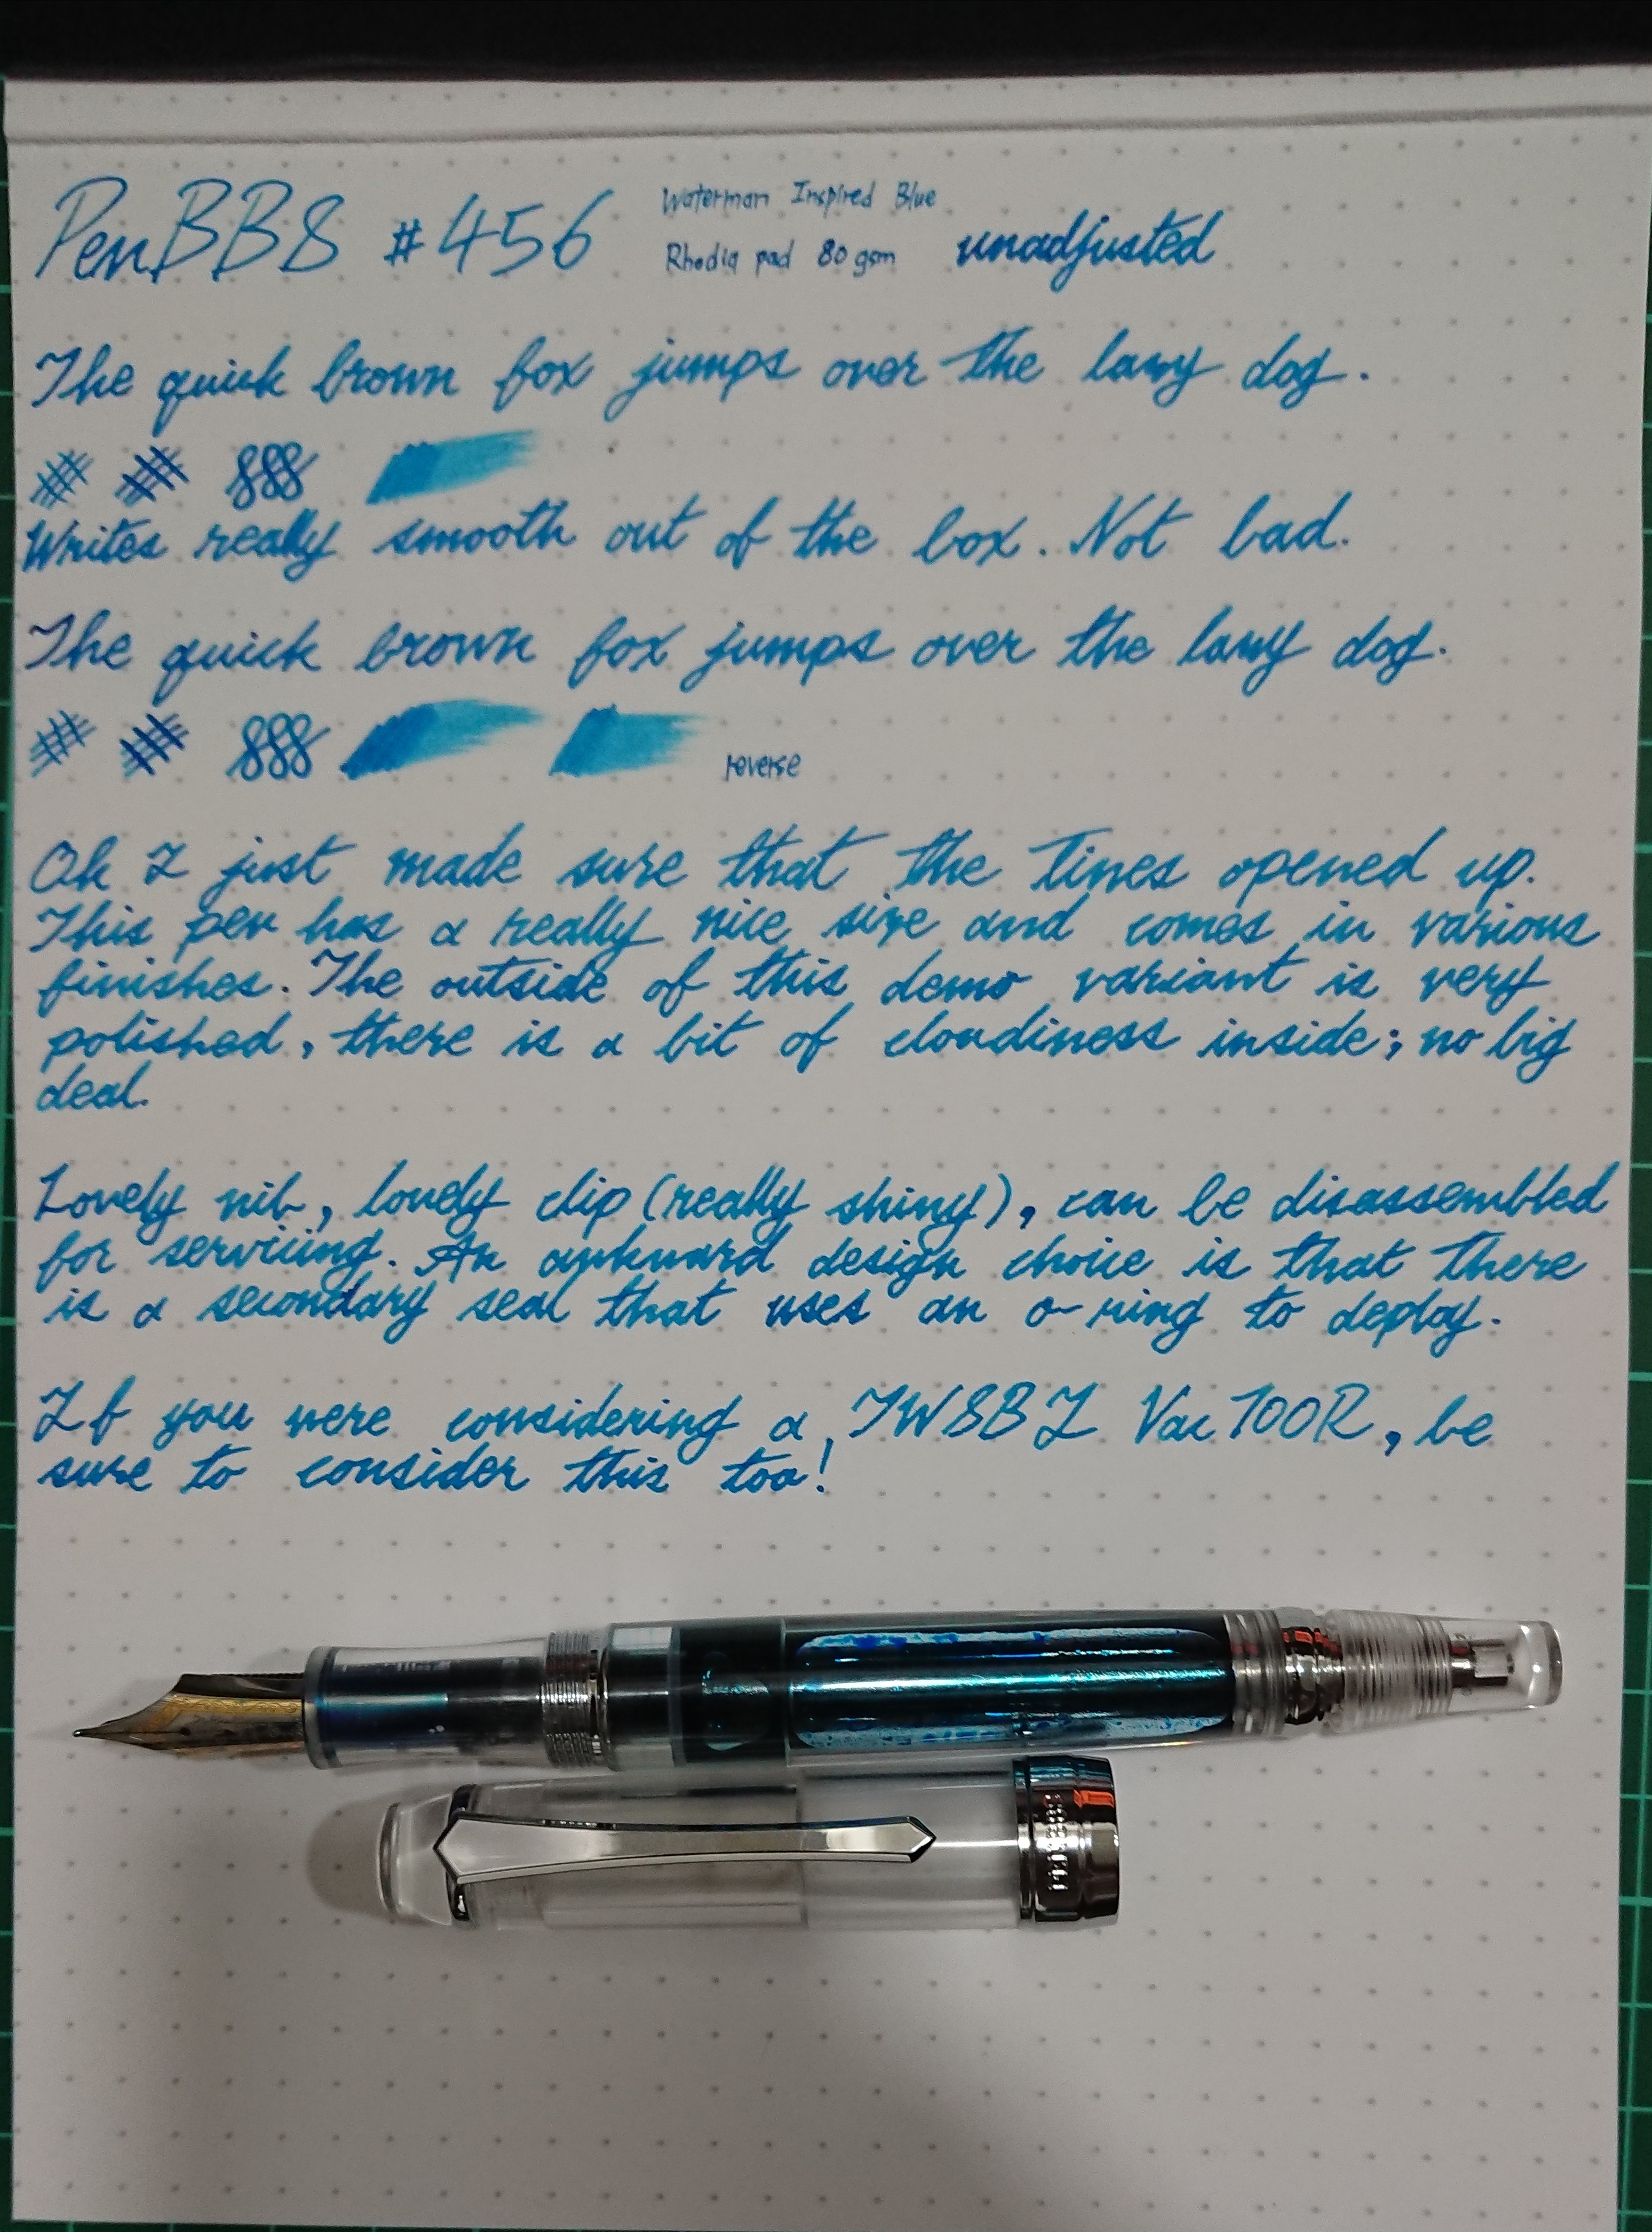 penbbs 456 writing sample